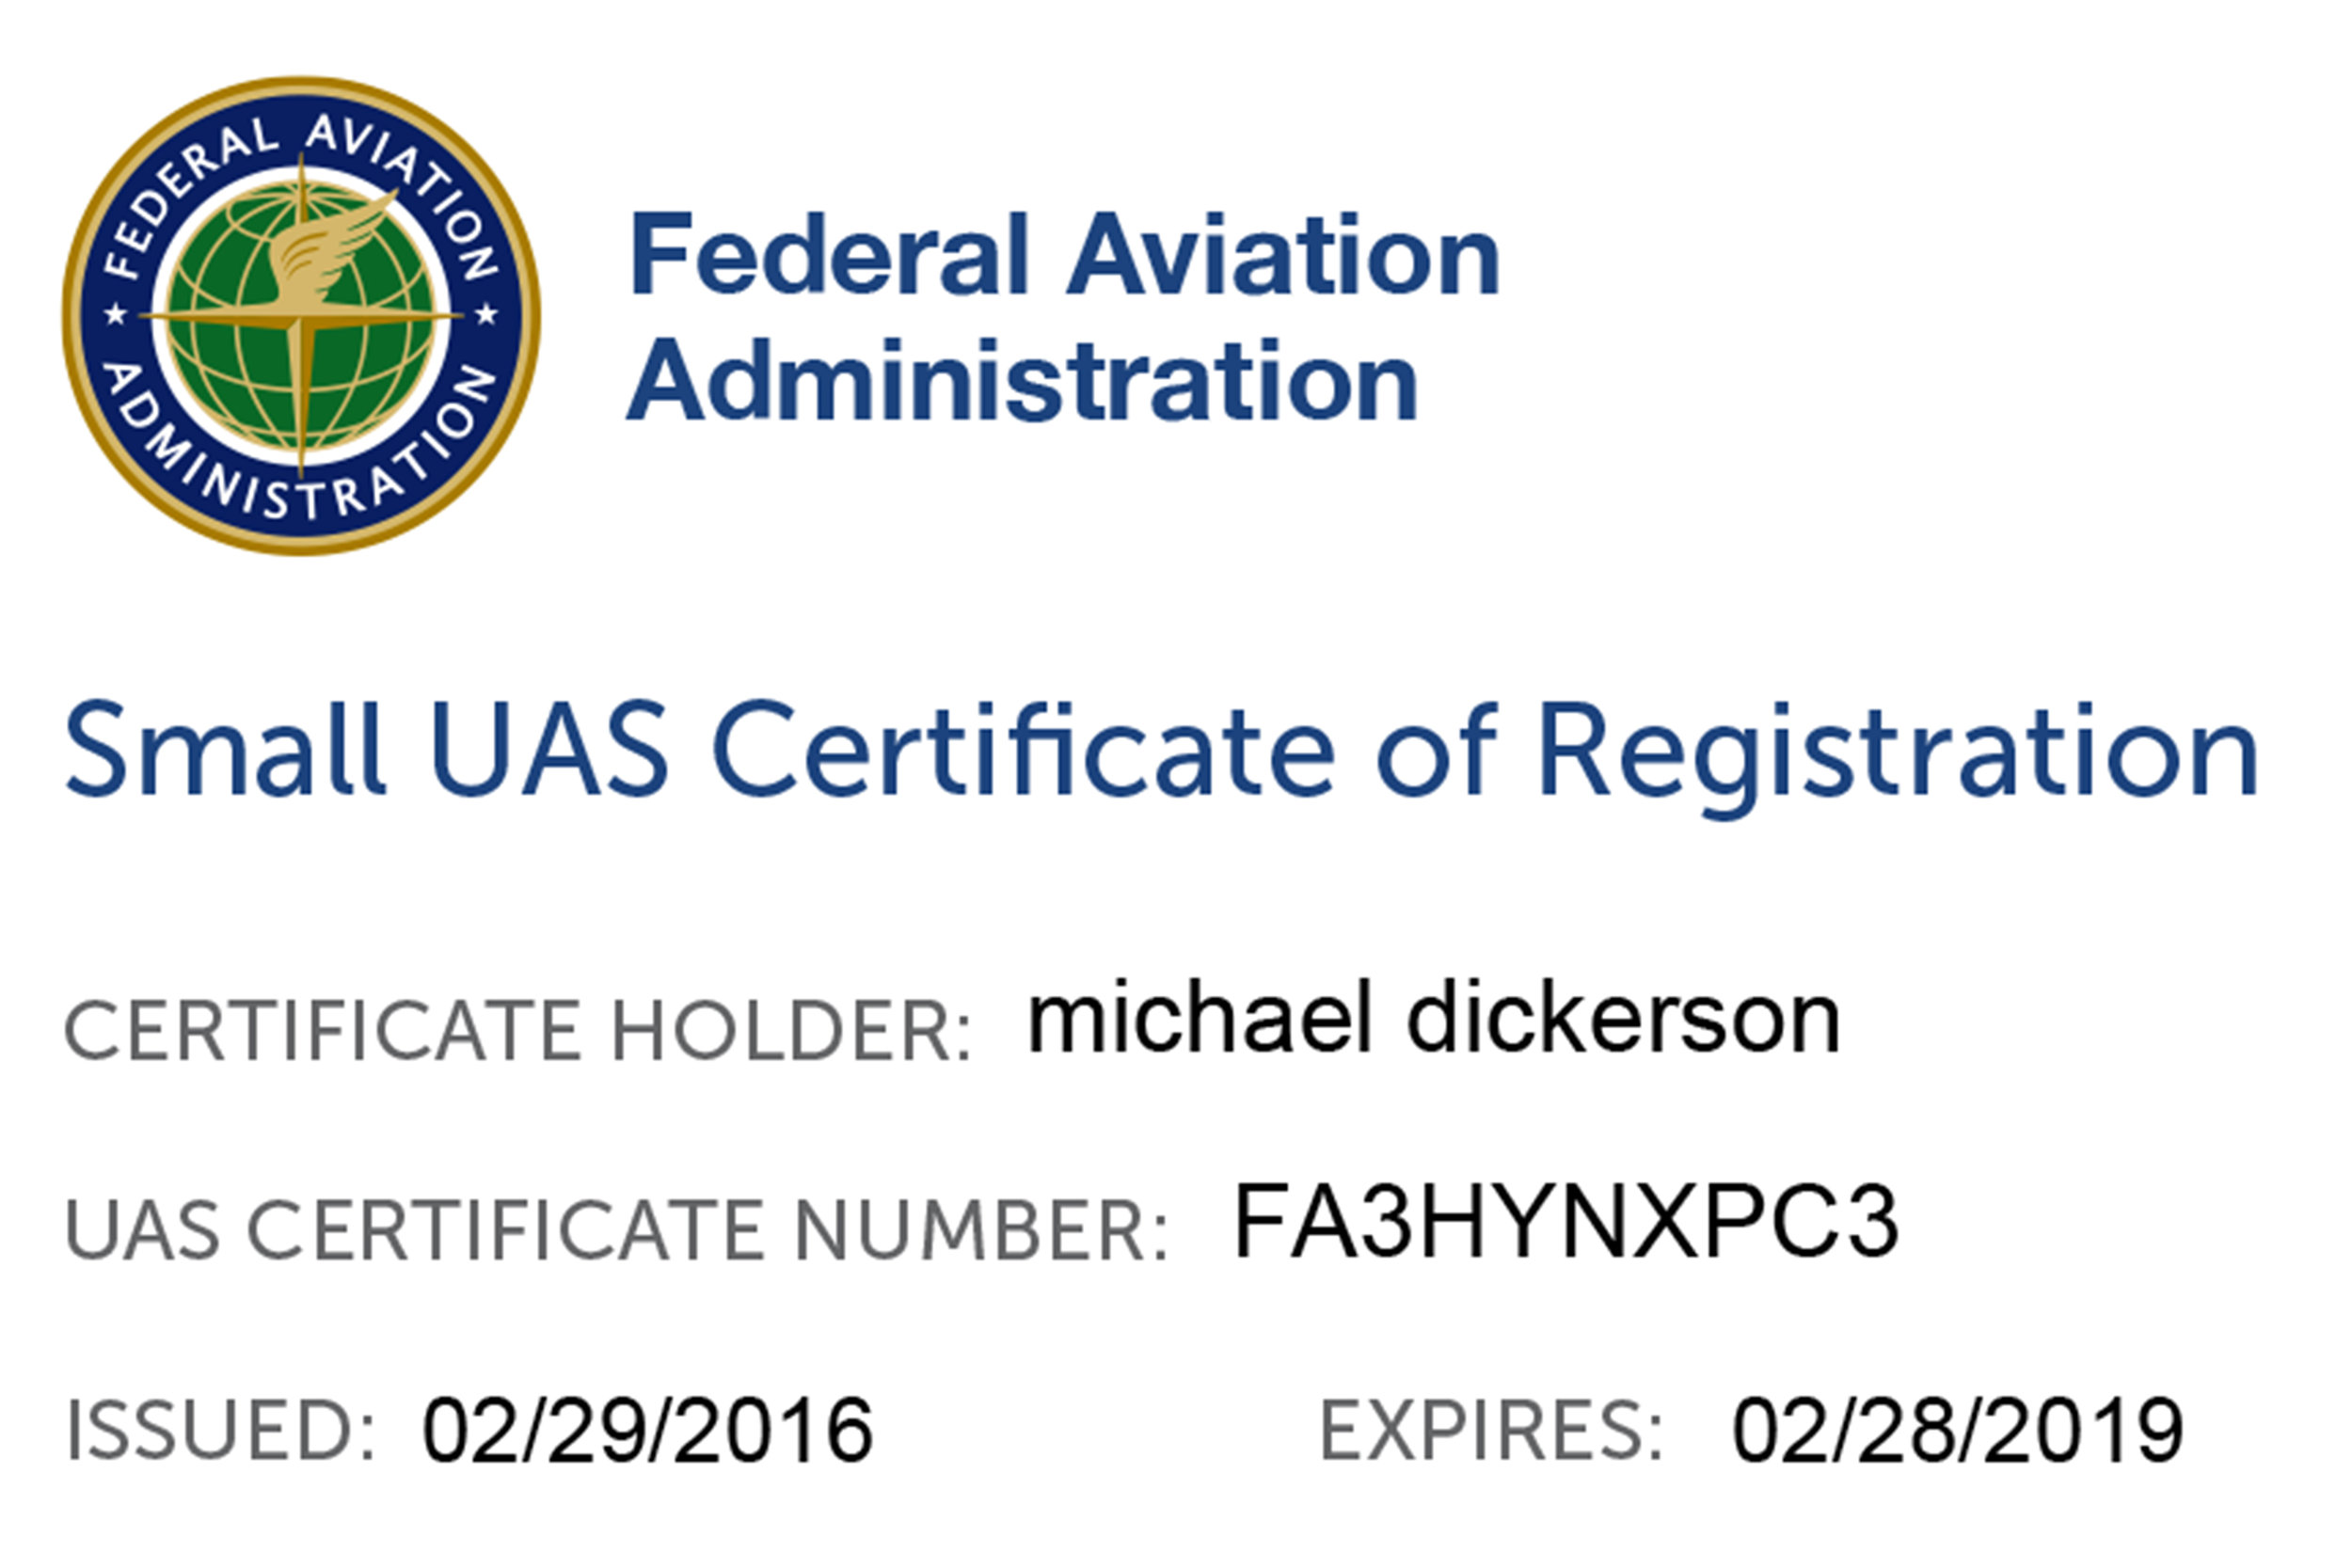 faa-small-uas-certificate-of-registration